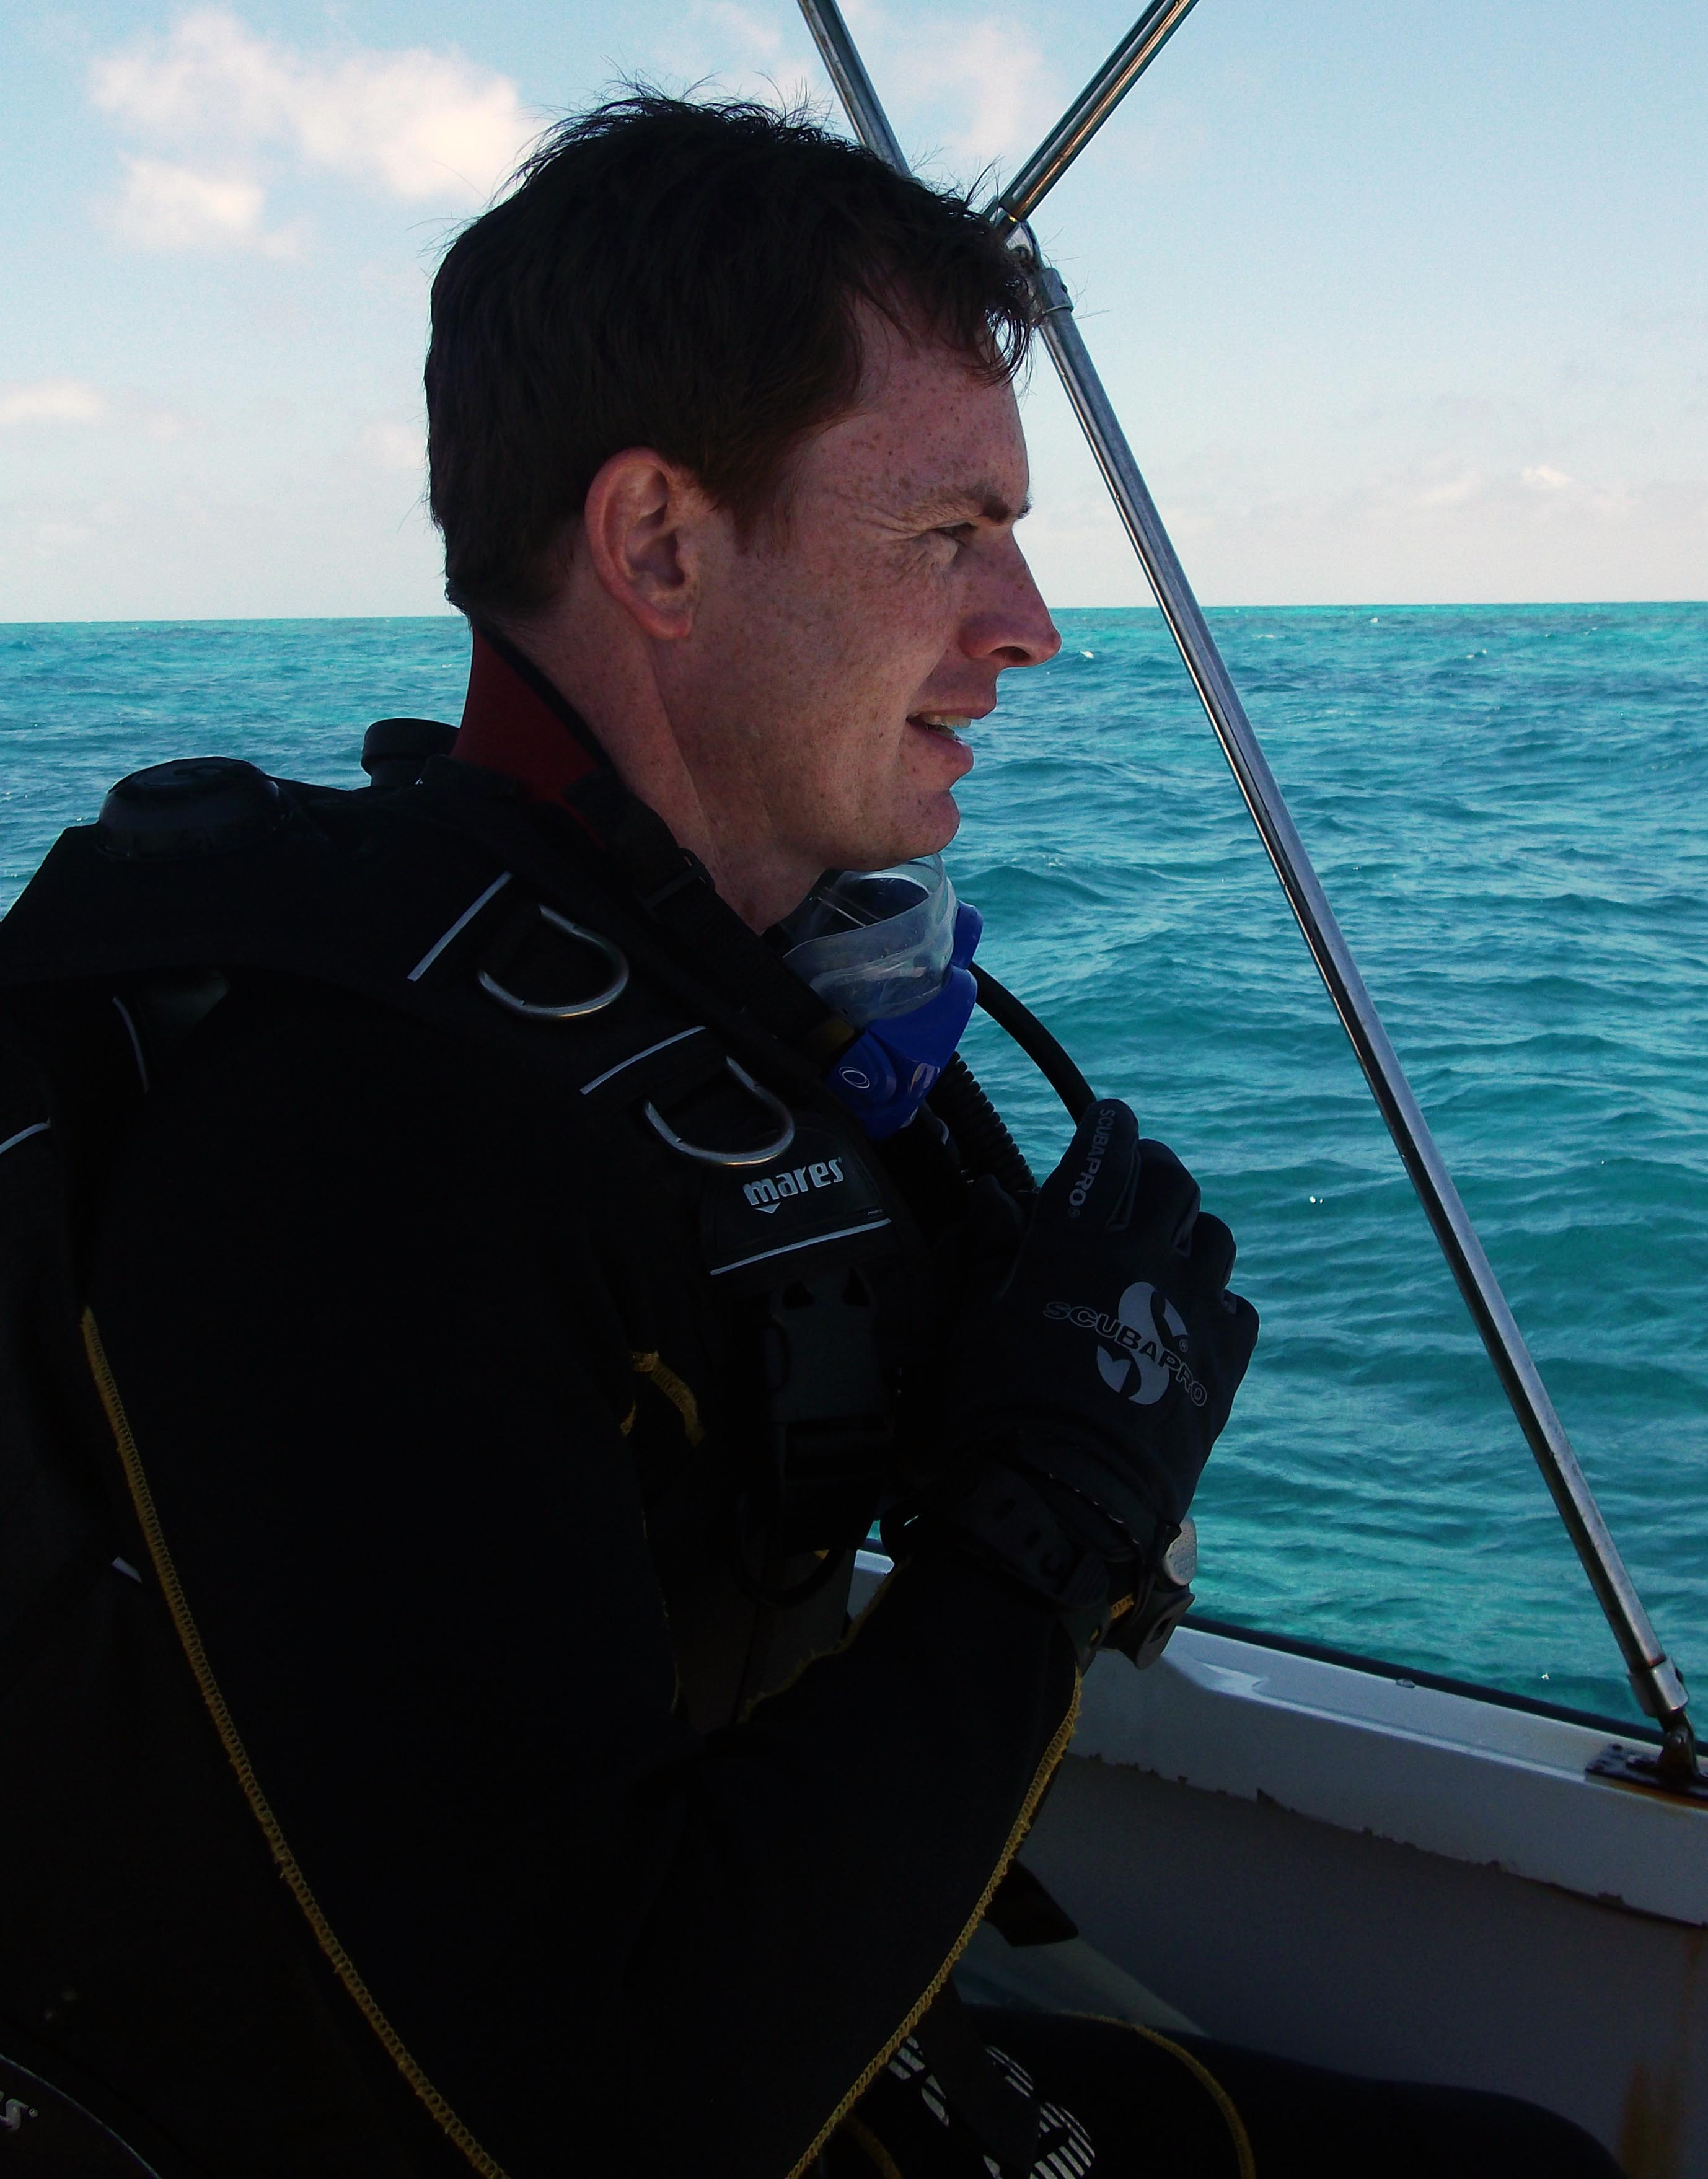 David Morgan Diving at Biscayne National Park